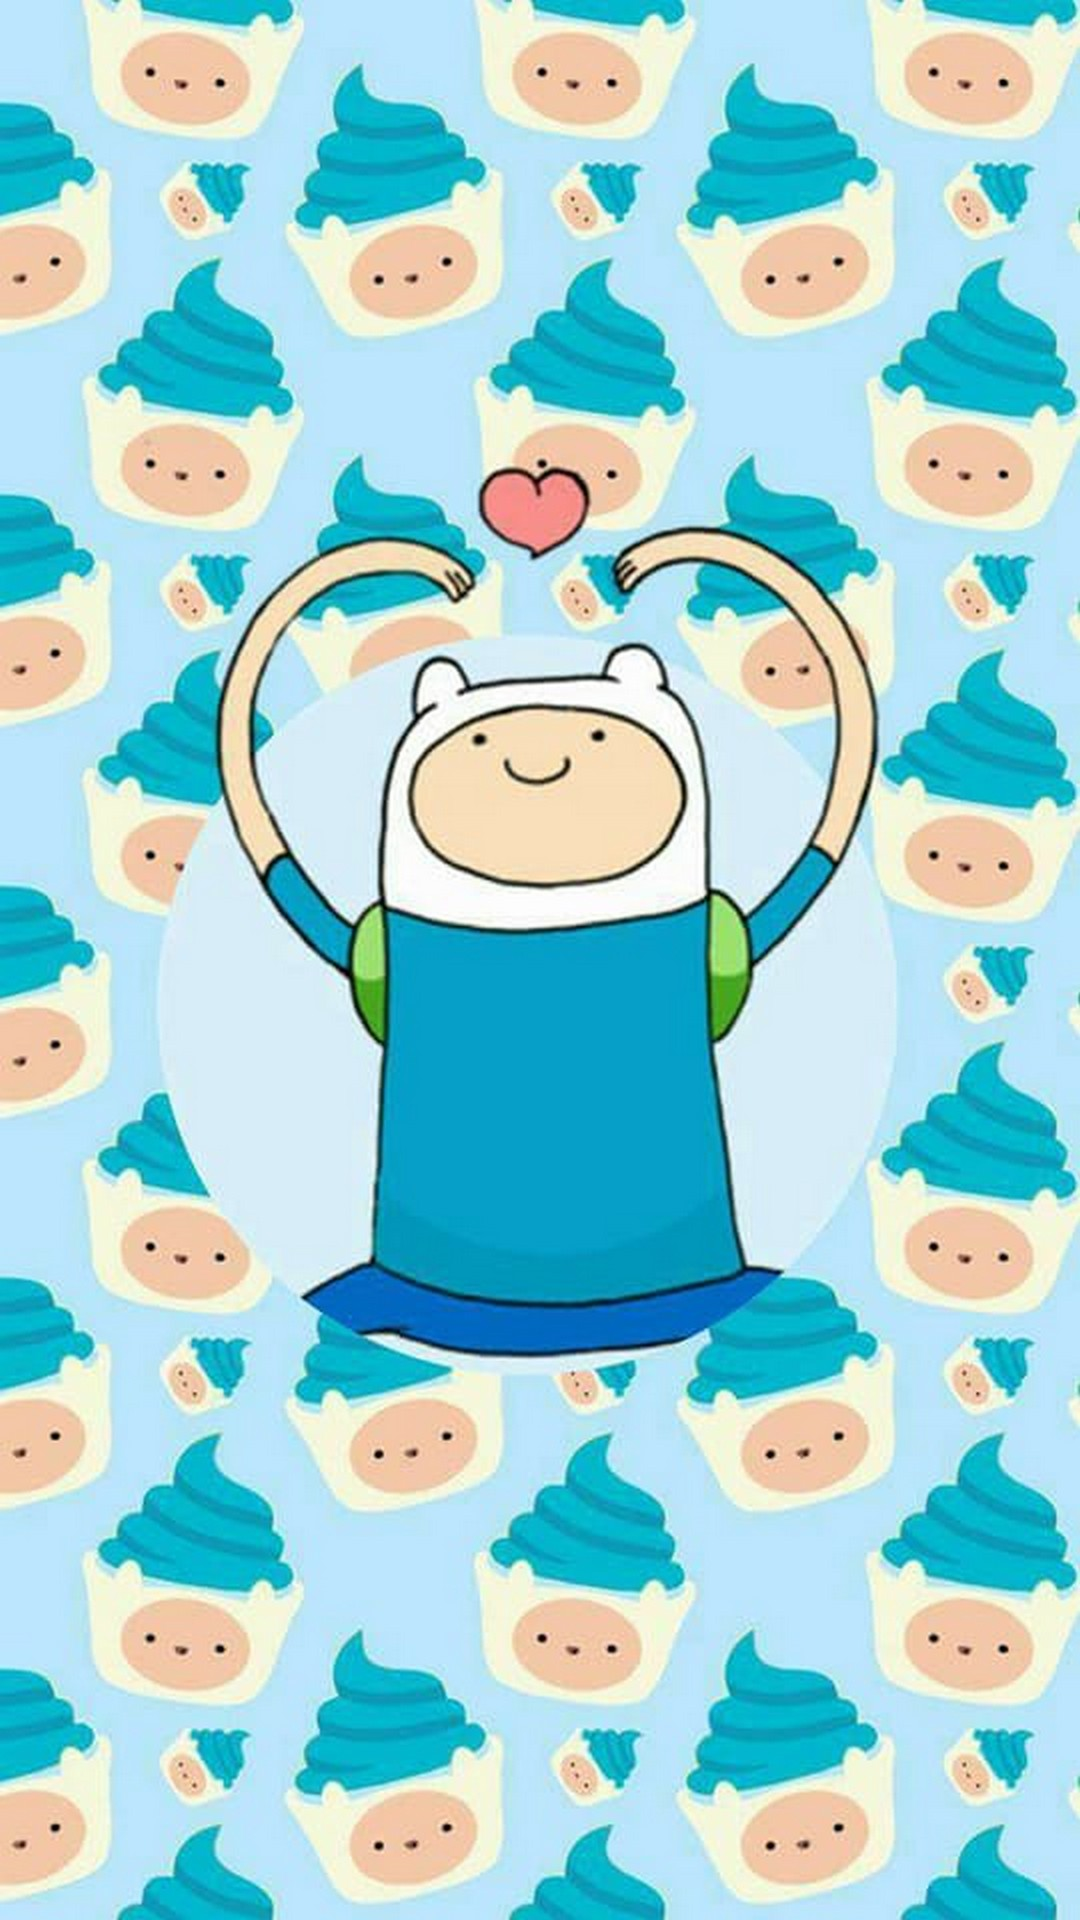 Wallpaper Adventure Time Iphone With Image Resolution - Adventure Time Wallpaper Iphone , HD Wallpaper & Backgrounds